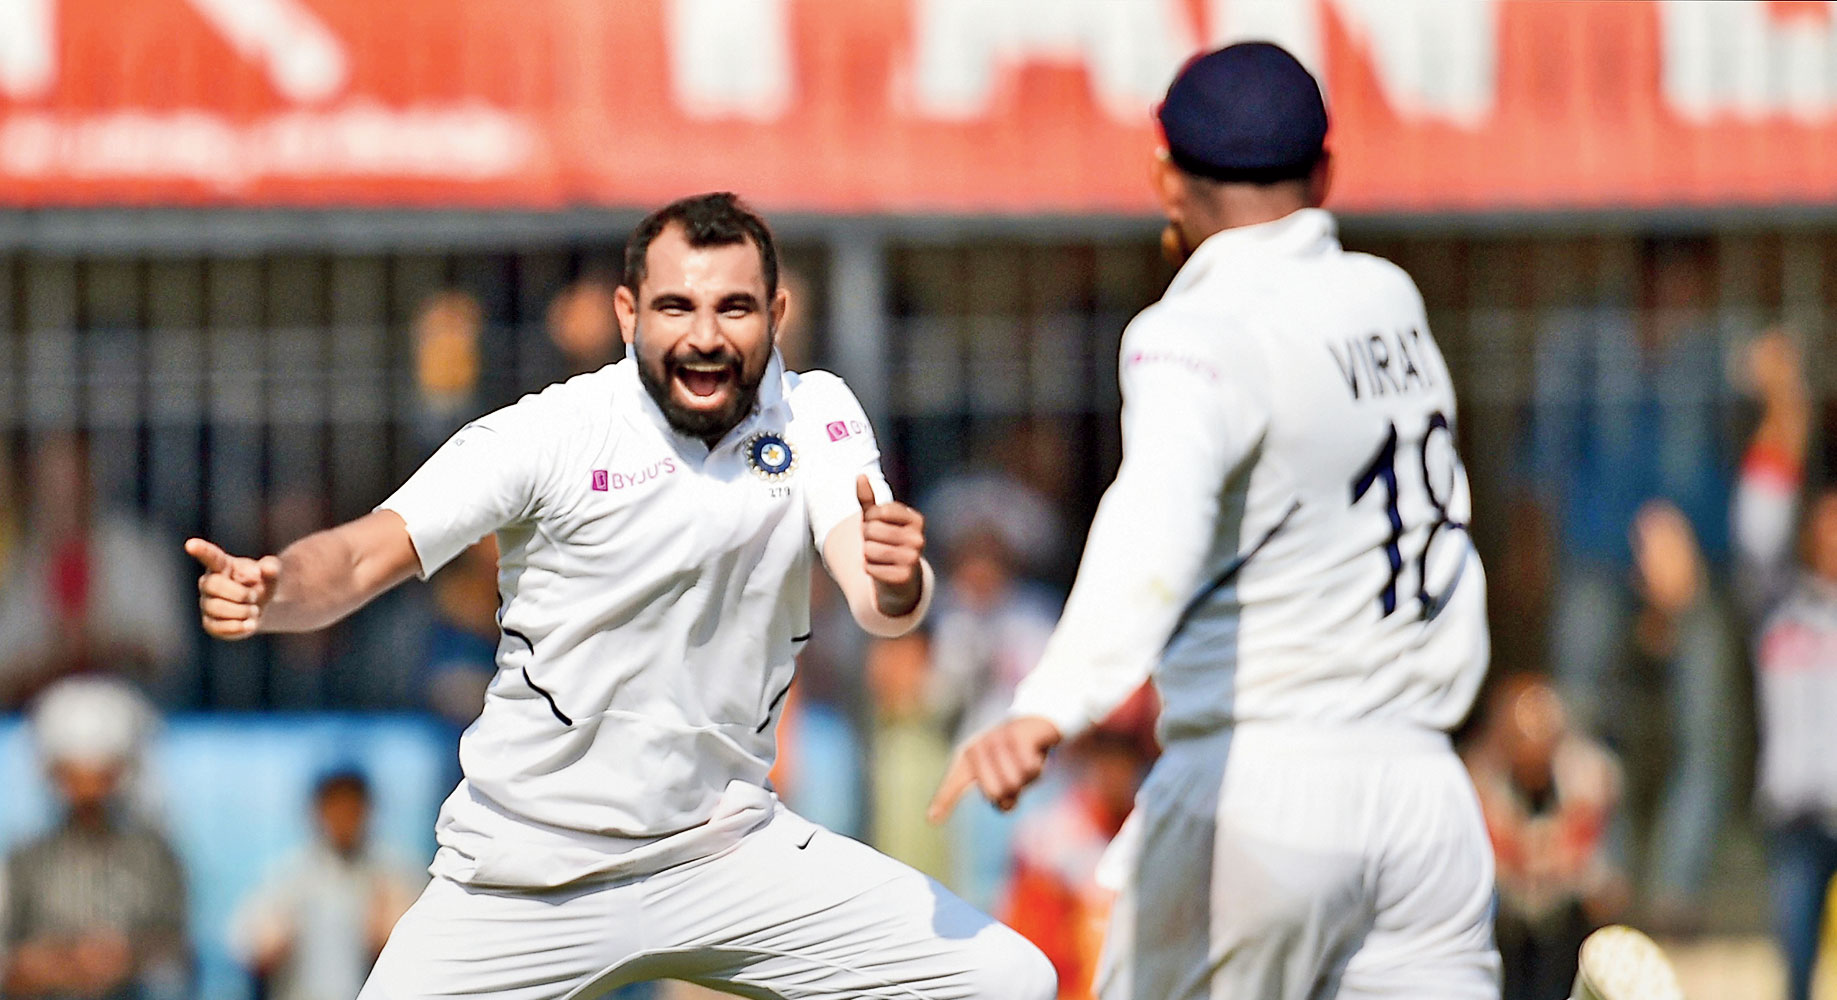 Mohammed Shami celebrates the wicket of Mushfiqur Rahim with captain Virat Kohli on the opening day of the first Test match in Indore on Thursday.